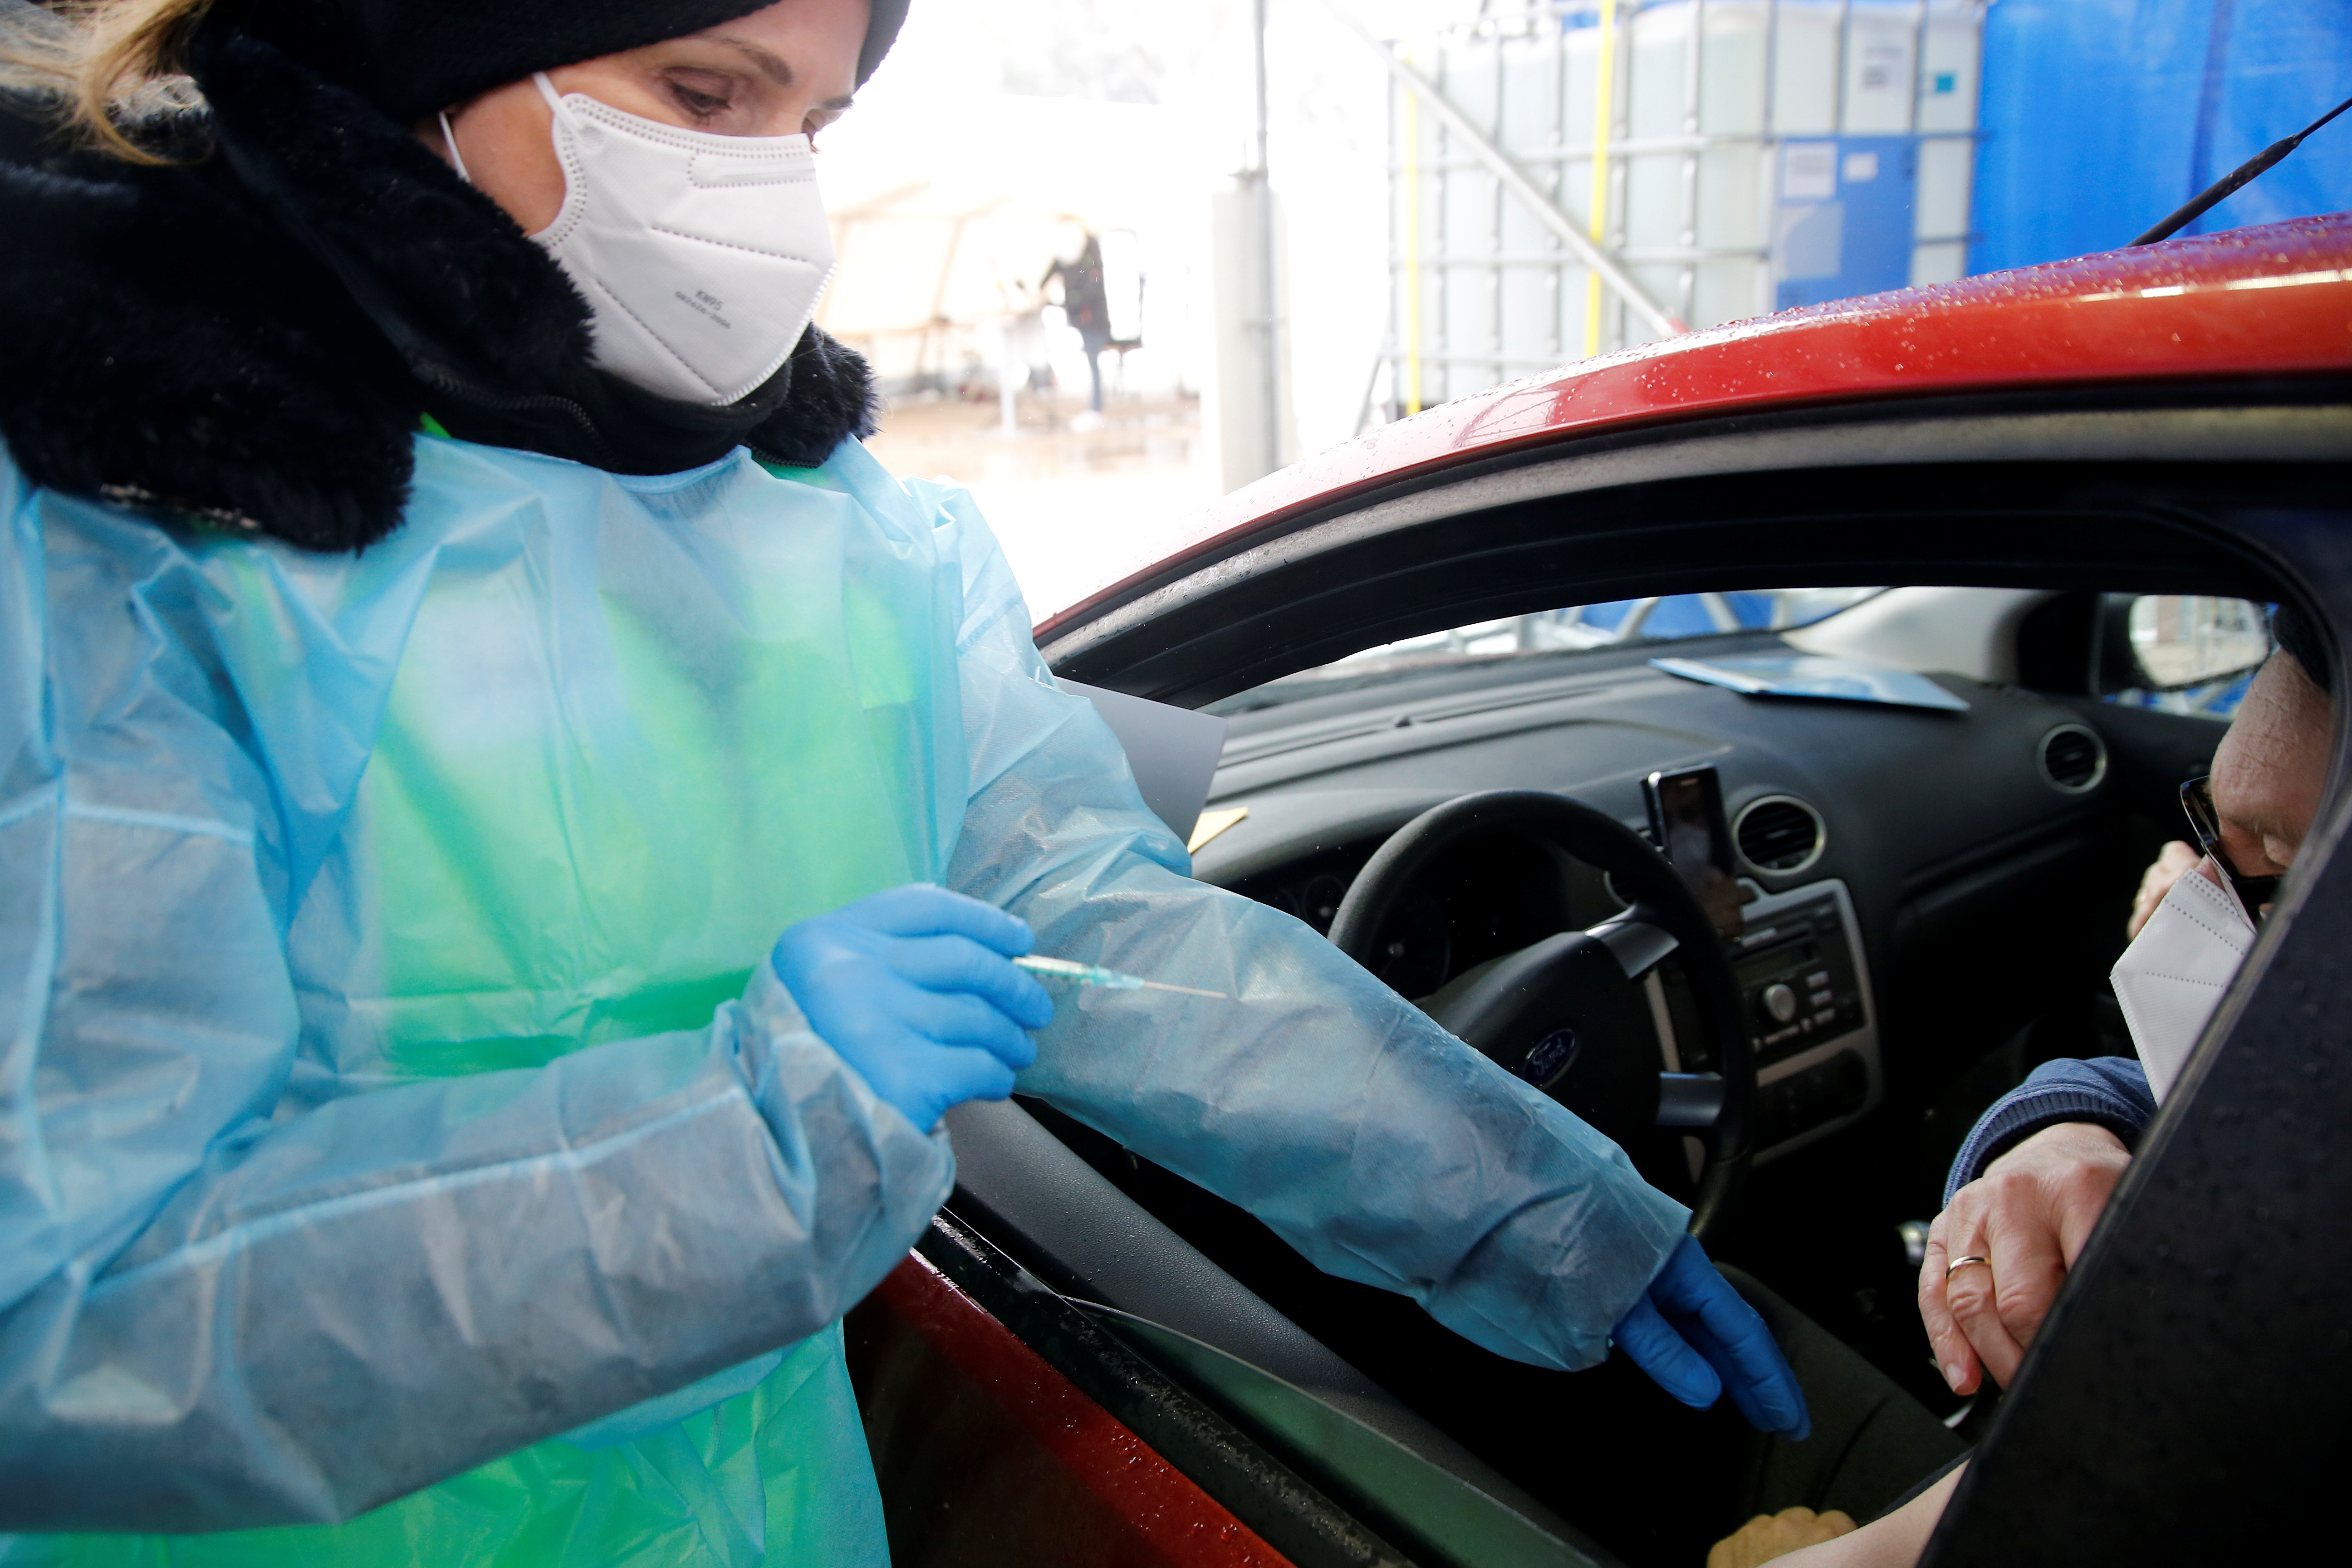 A medical employee vaccinates a man with the AstraZeneca COVID-19 vaccine at a drive-in vaccination center, as the spread of the coronavirus disease (COVID-19) continues, in Schwelm, Germany, April 7, 2021. REUTERS/Leon Kuegeler